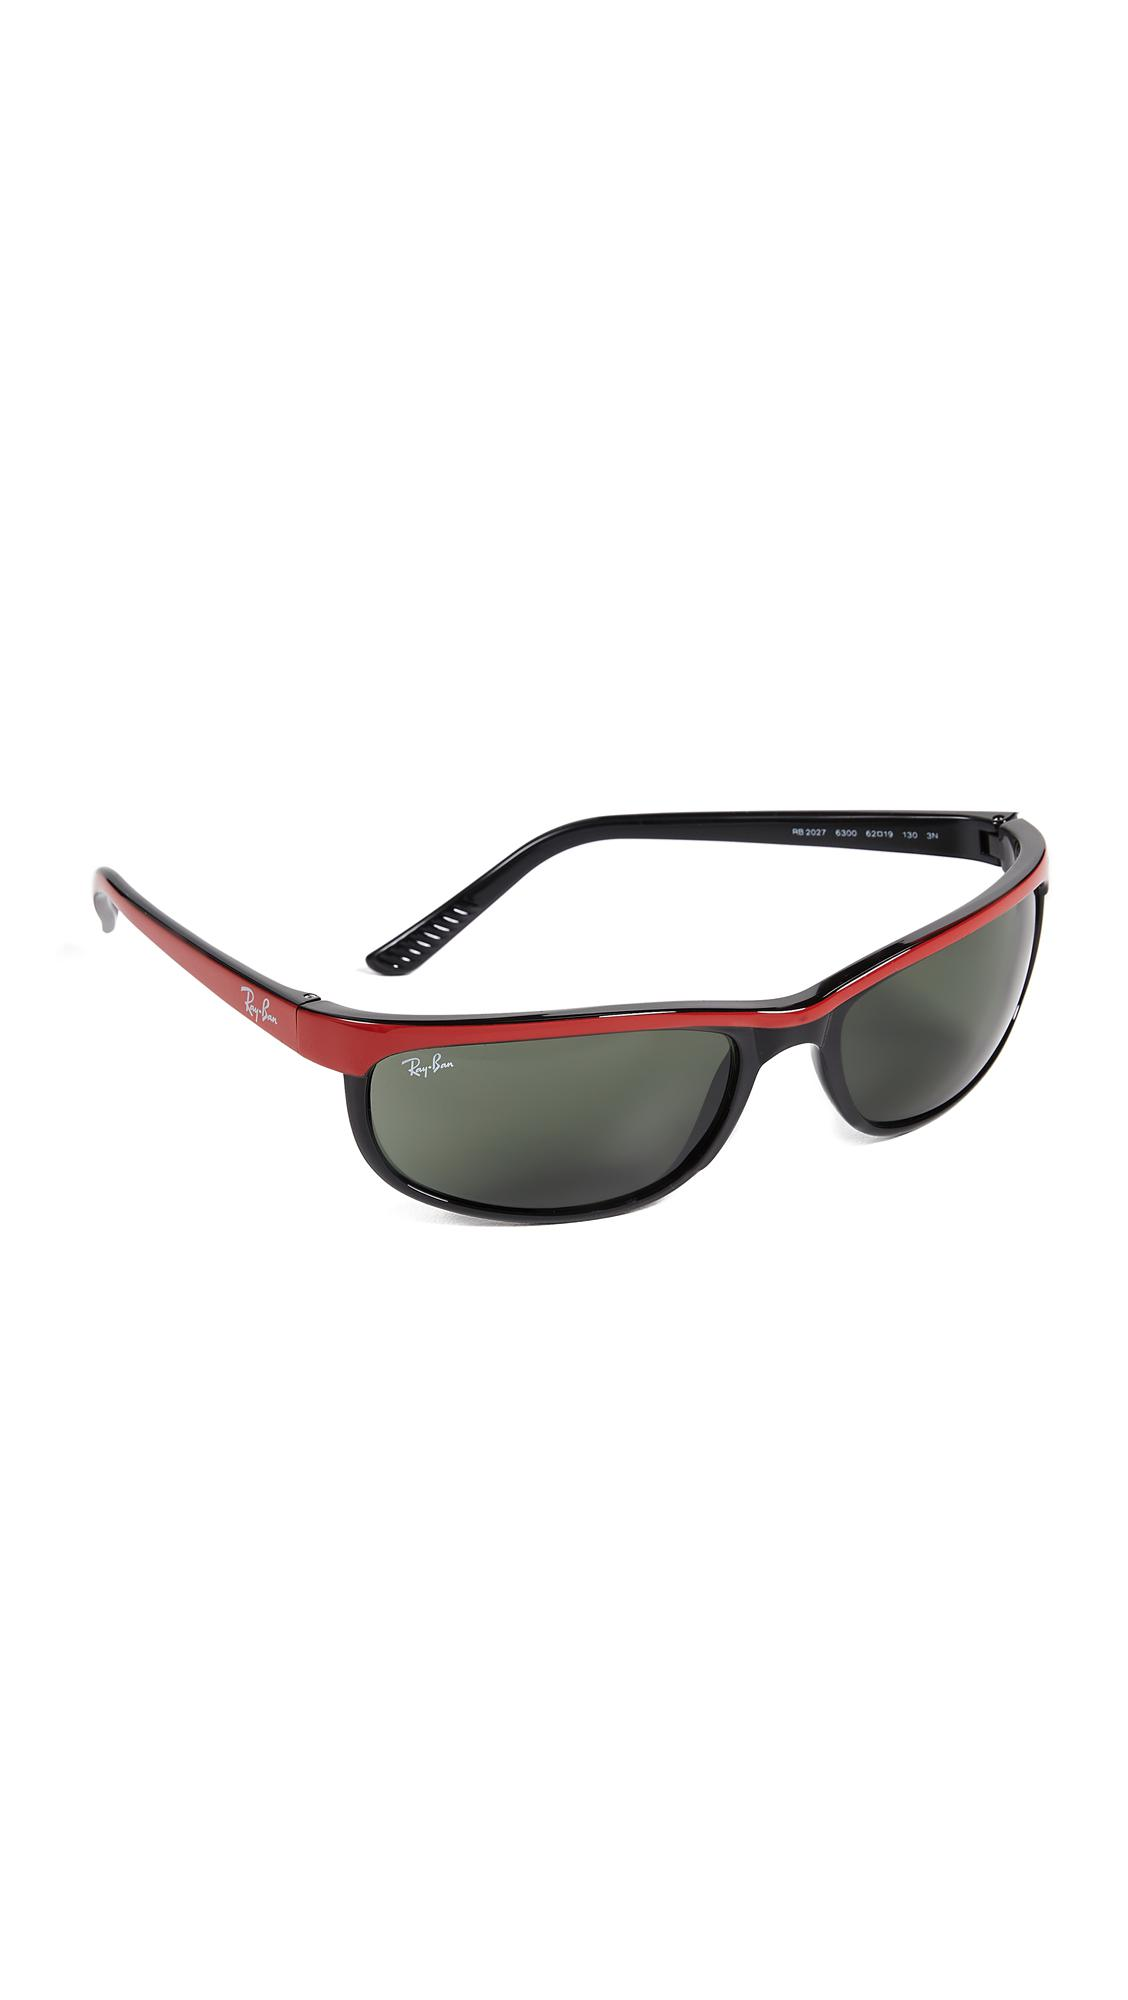 32c2752f6f9 Lyst - Ray-Ban Predator 2 Sunglasses in Black for Men